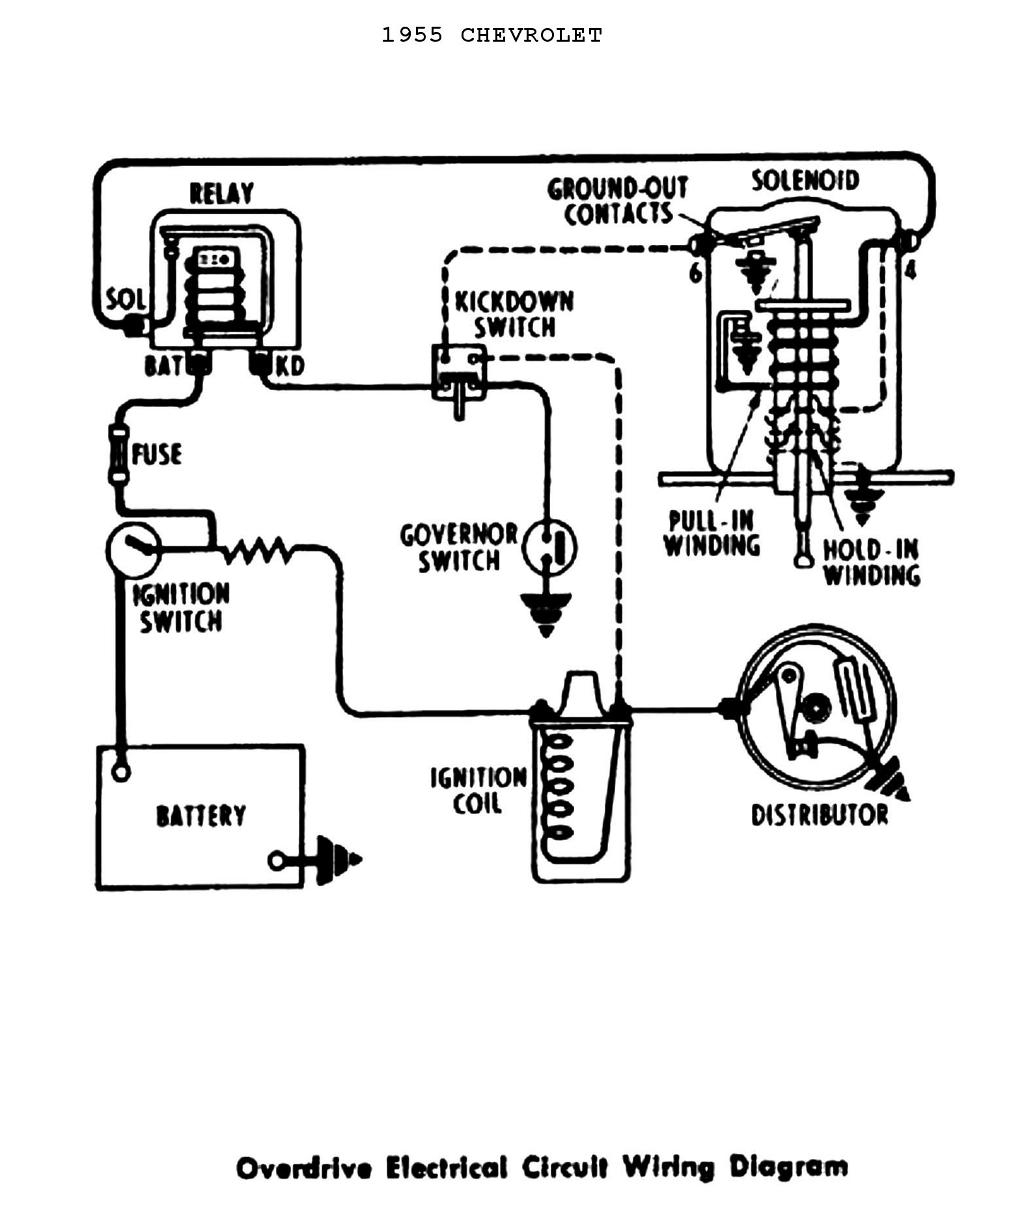 hight resolution of ford coil wiring diagram wiring diagram database ford 289 coil wiring